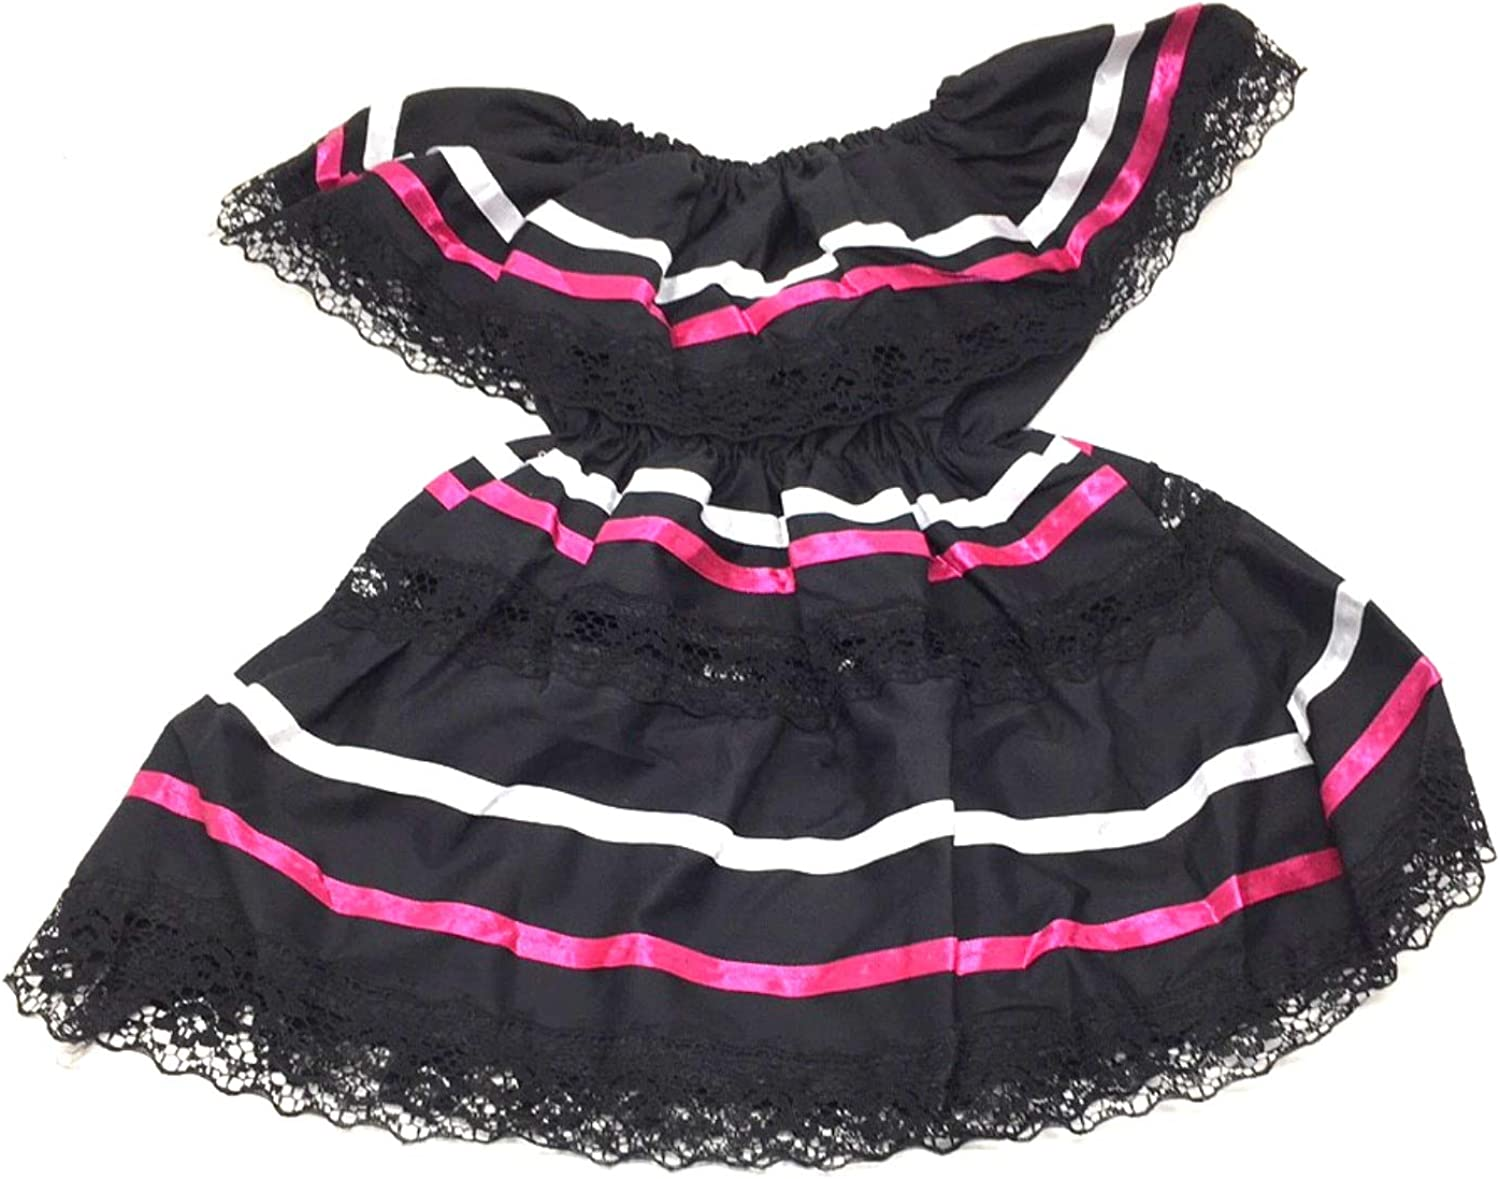 Mexican Infant Dress Size 0 Color Ultra-Cheap Deals store Co Day Black Dead The of